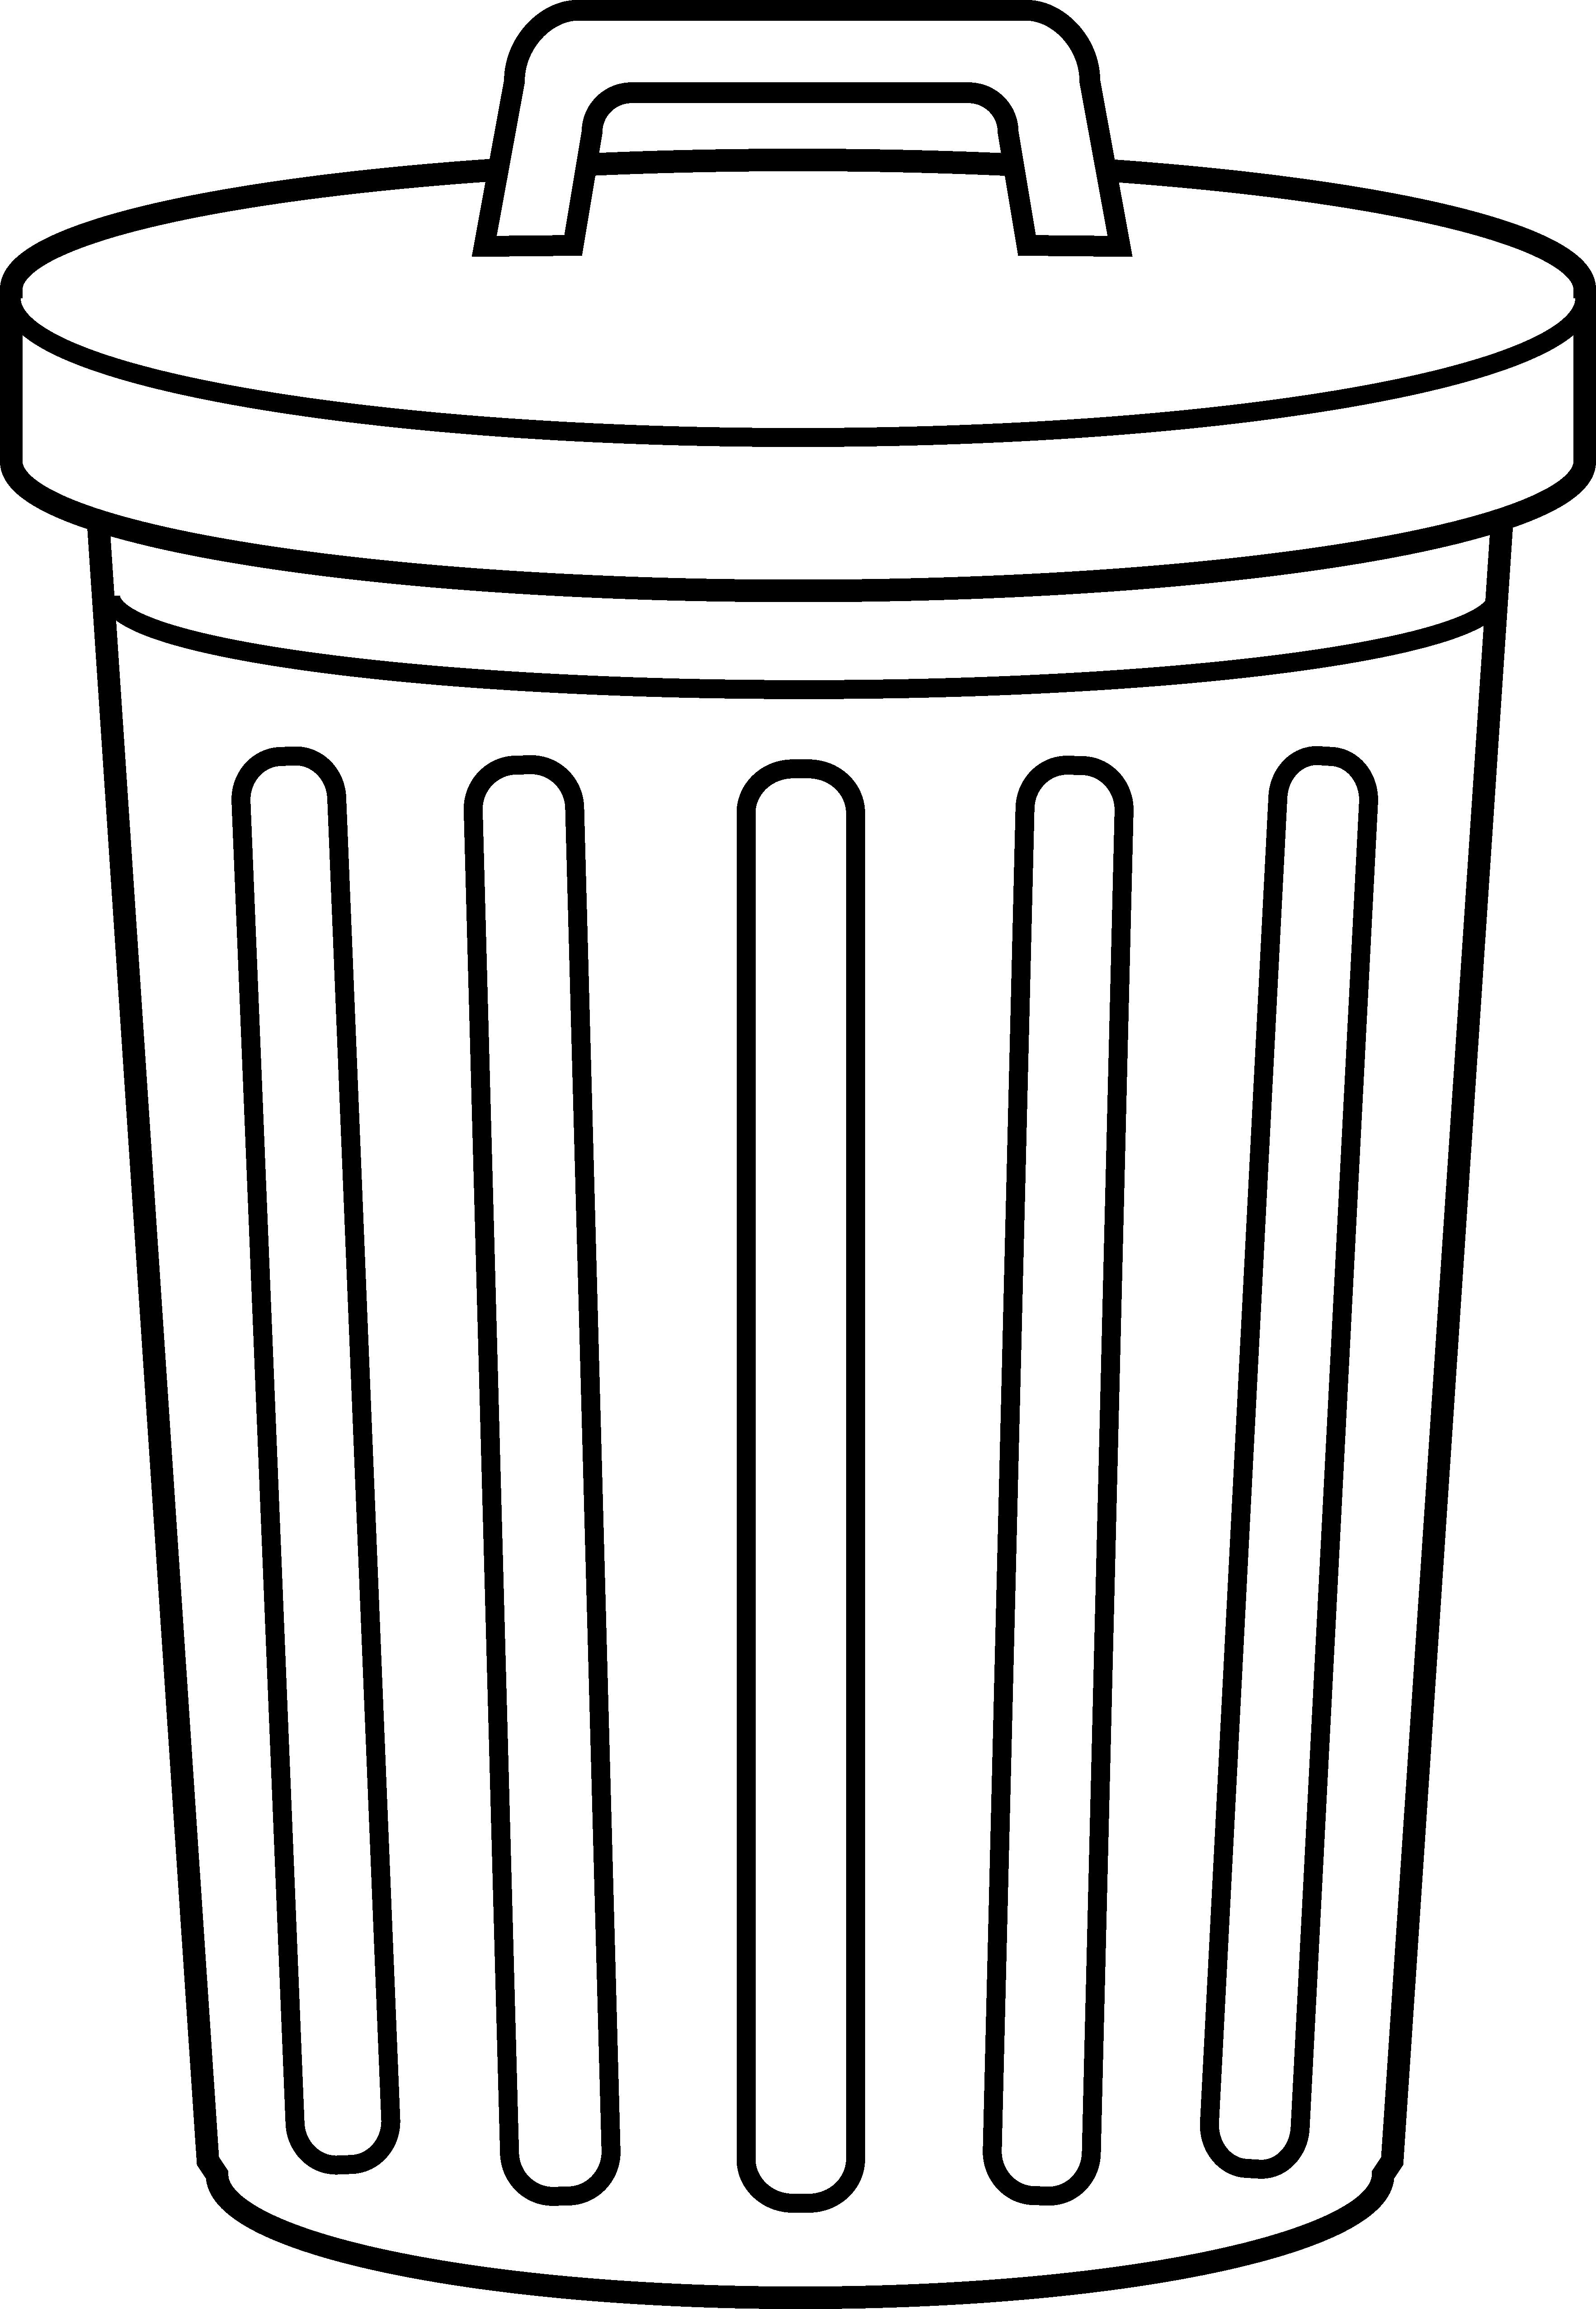 Garbage clipart clip art. Awesome of black and